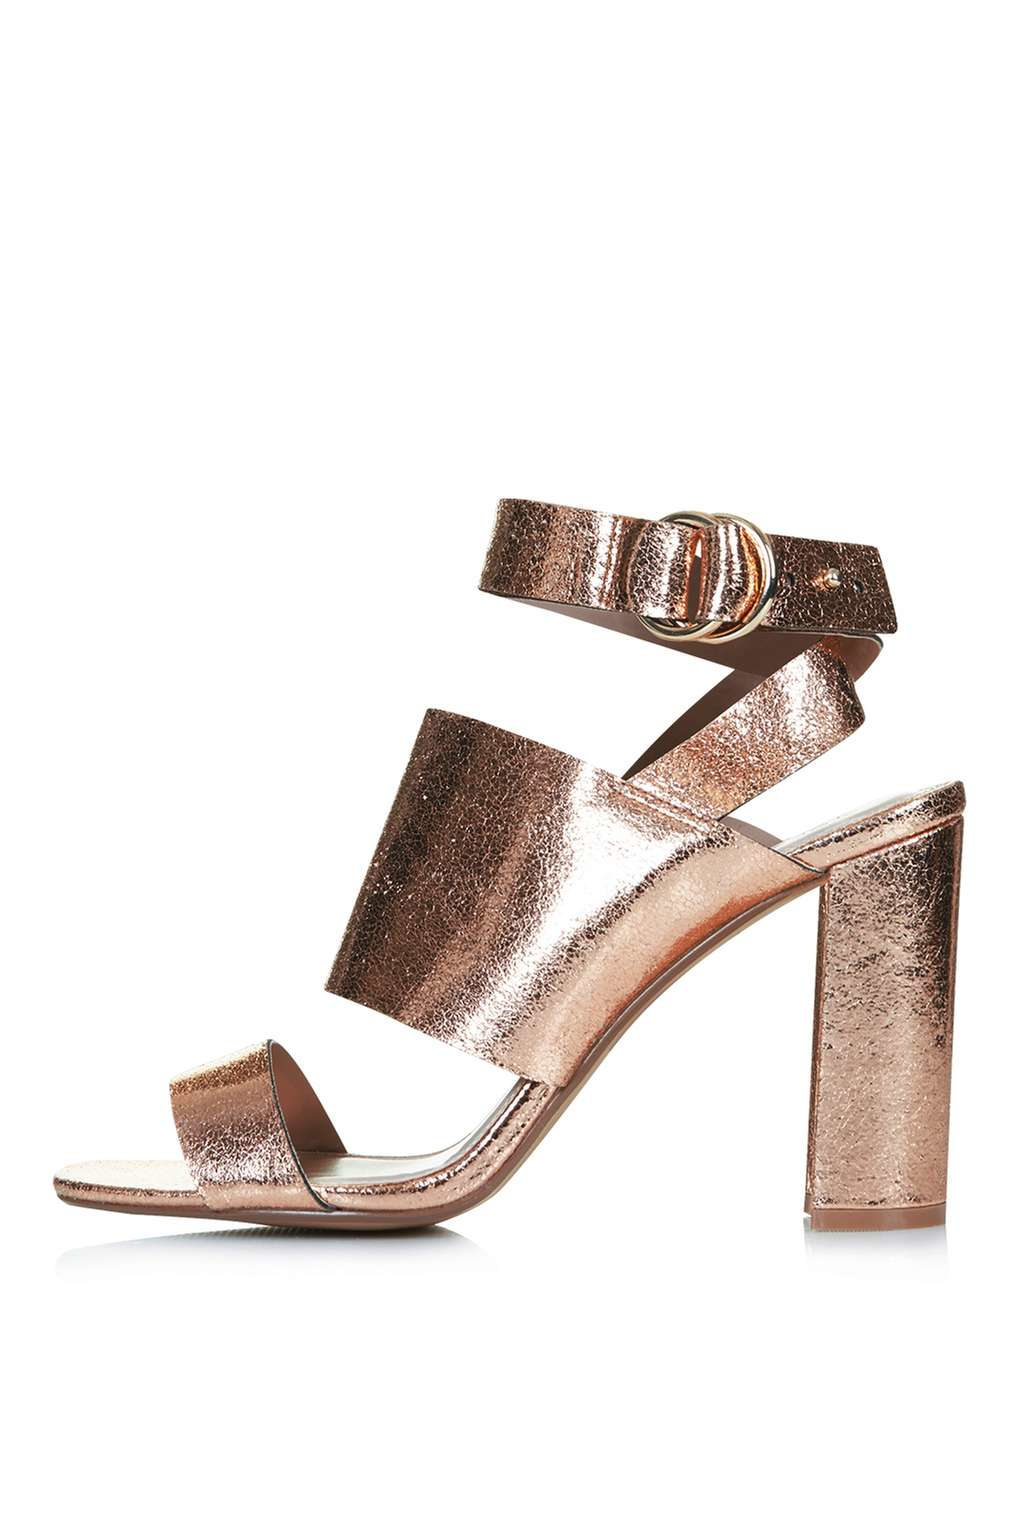 Topshop Monica Block Heel Sandals in Metallic | Lyst